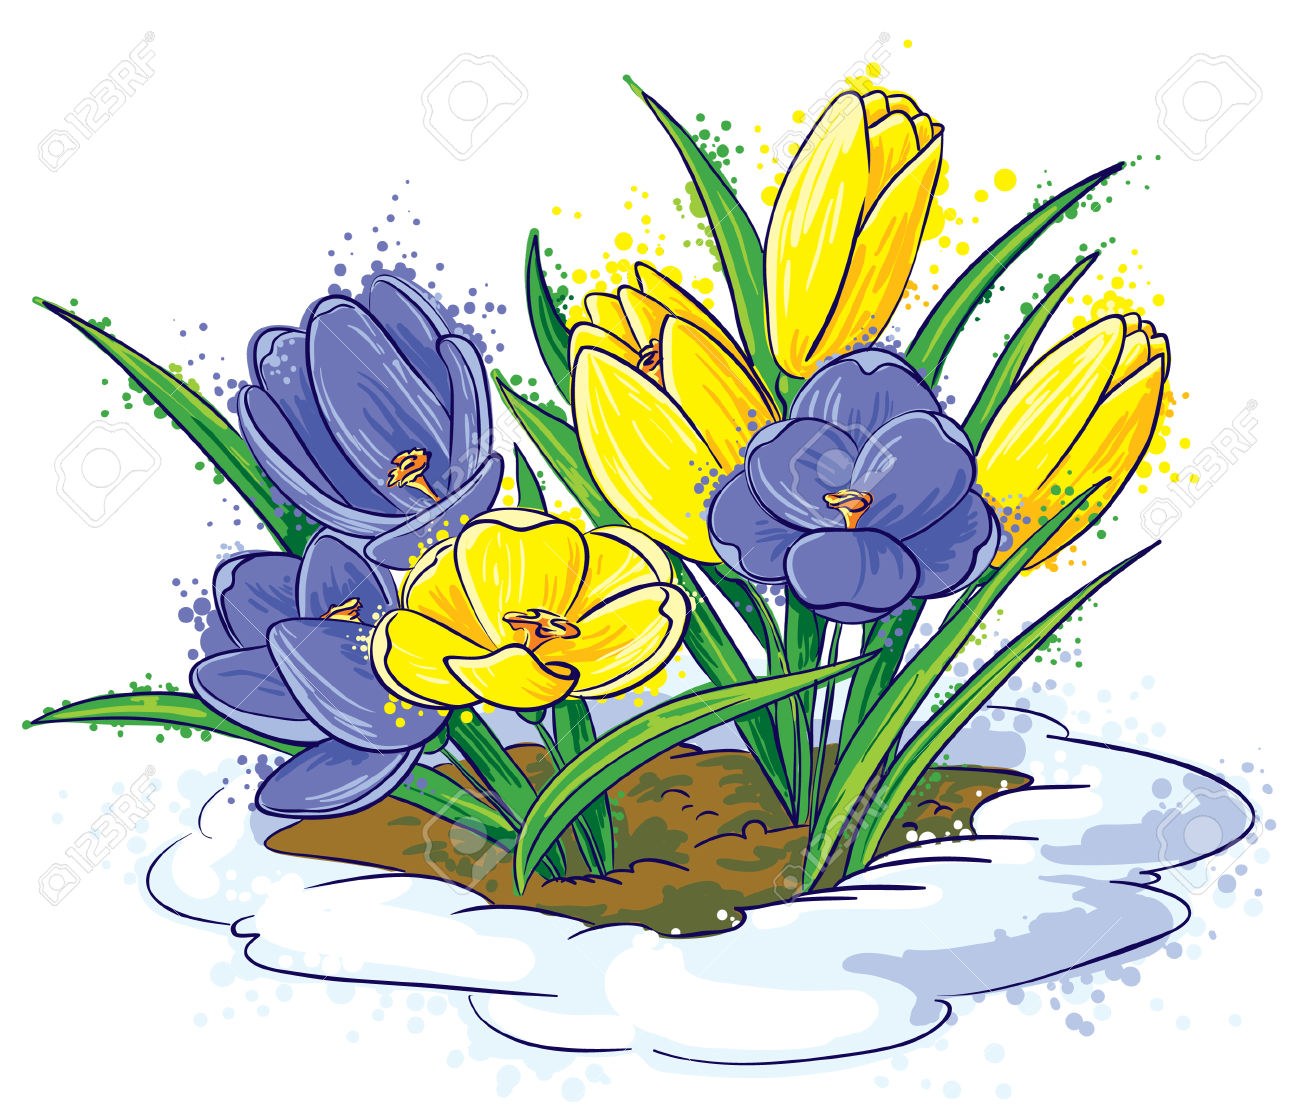 crocuses clipart clipground